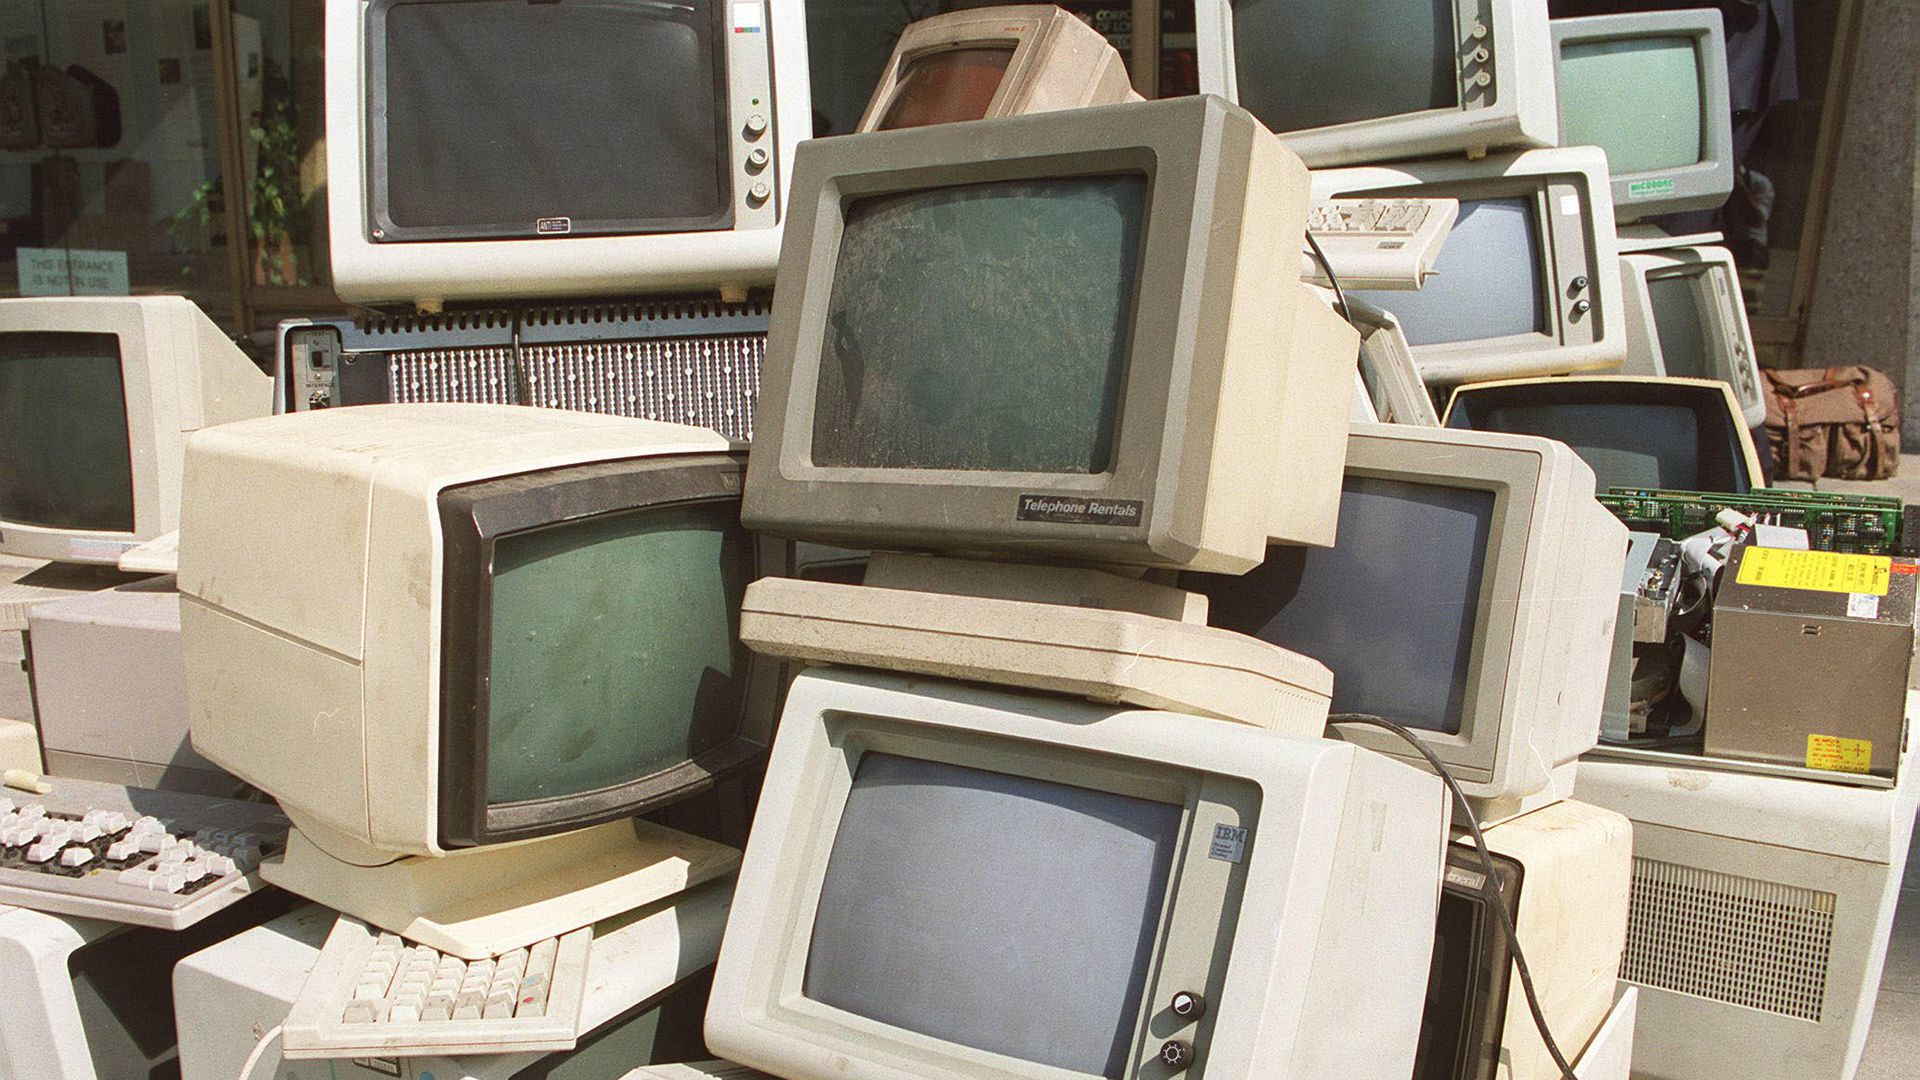 Waste computers from a 1990s photoshoot